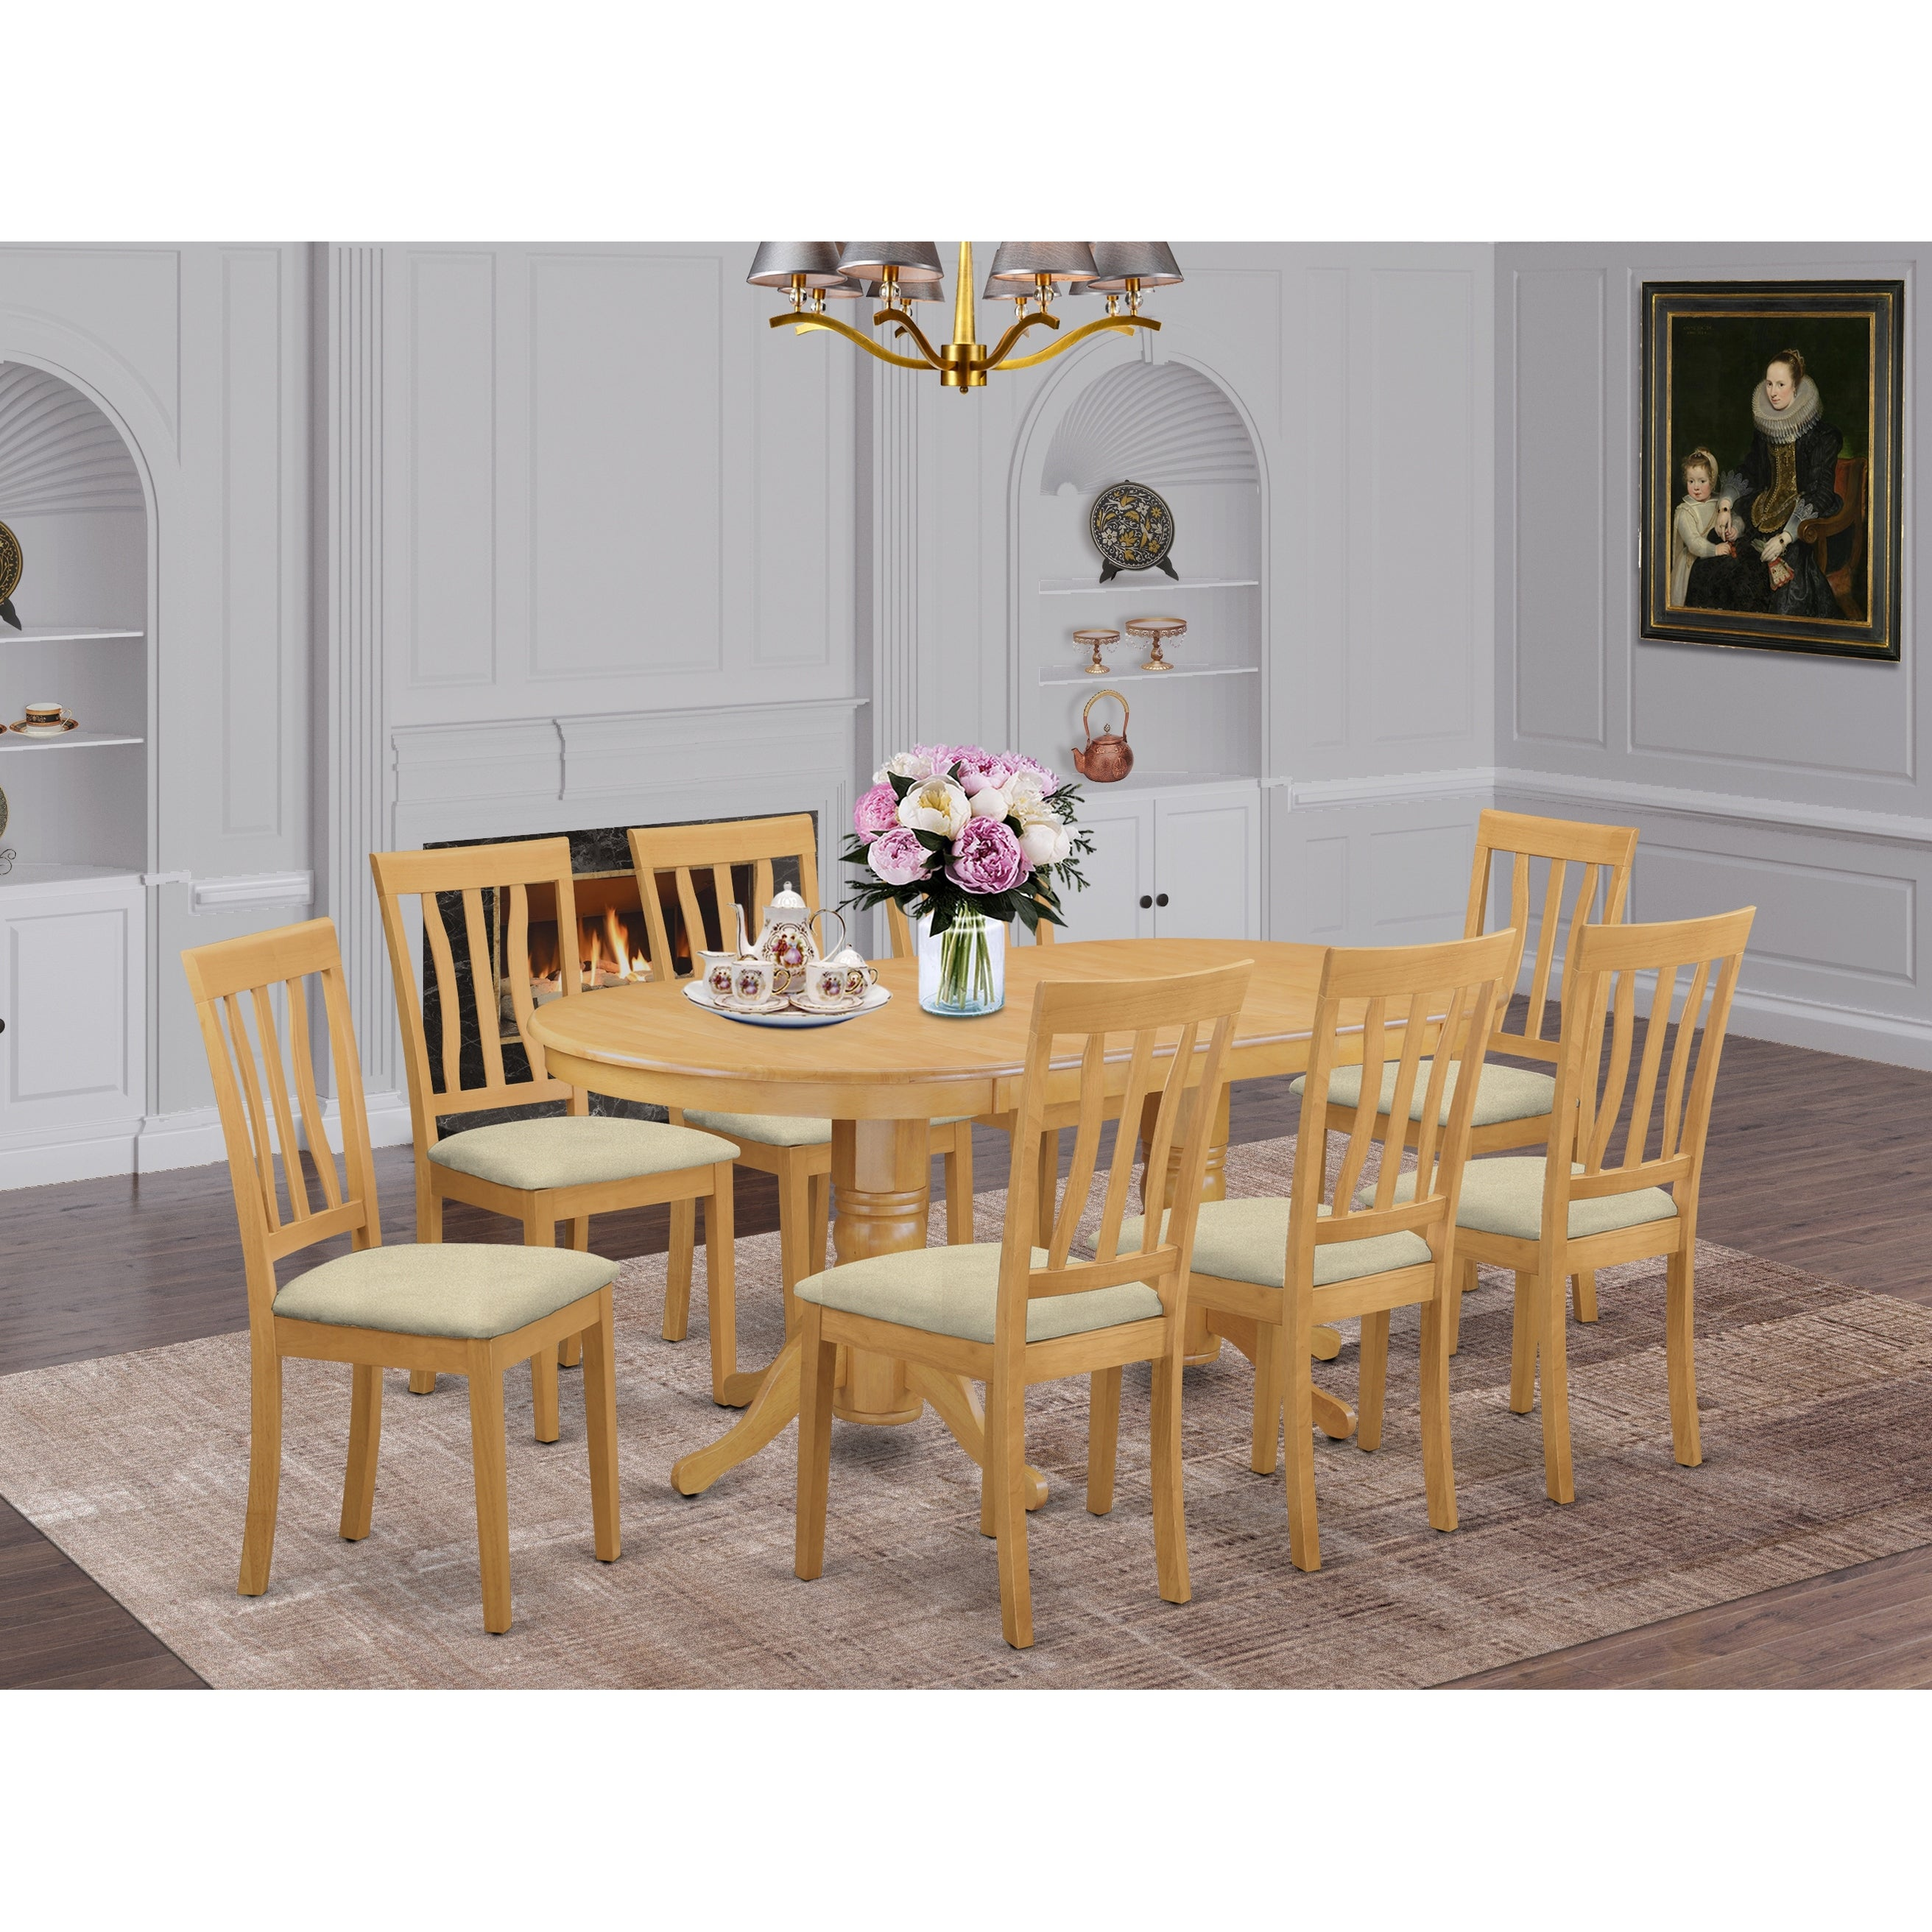 9-piece Dining Set - Dinette Table And 8 Kitchen Chairs In Oak Finish - Overstock - 14366647